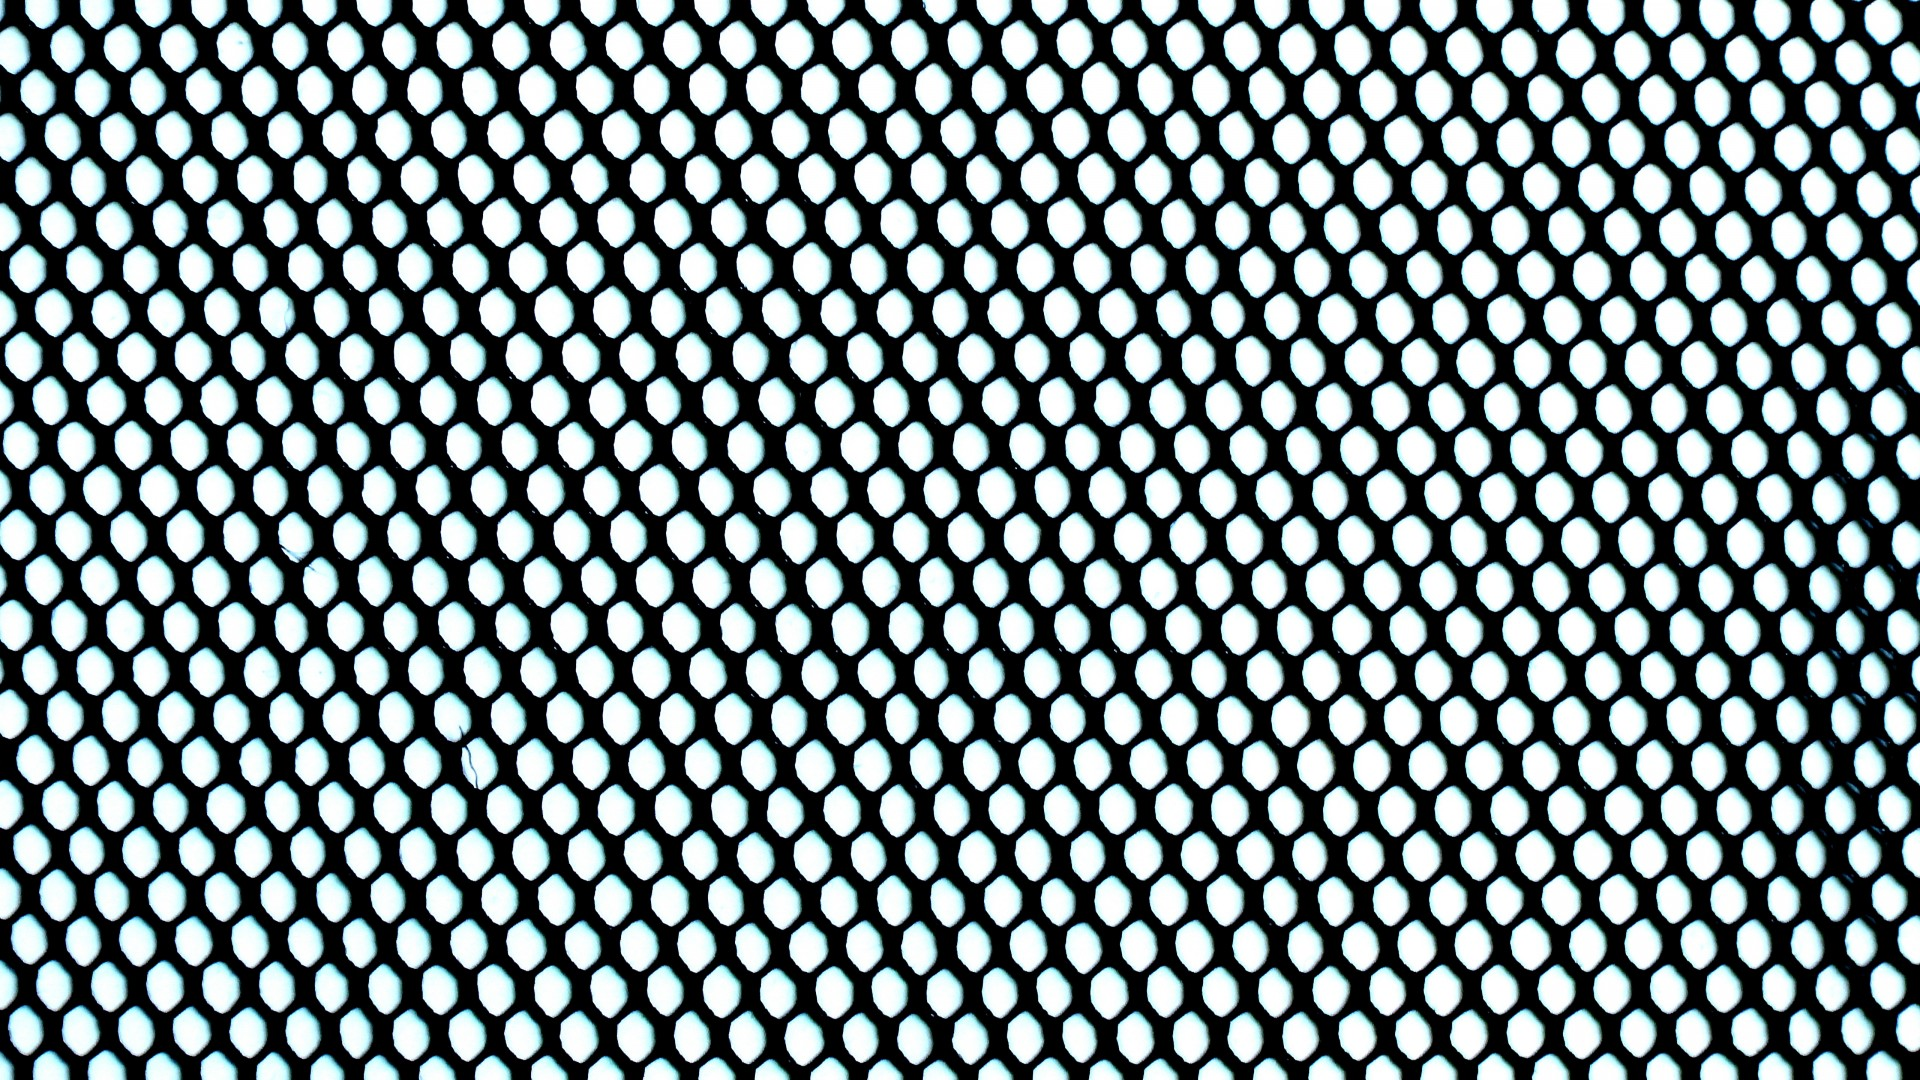 Black And White Geometric Wallpaper Fishnet Free Stock Photo Public Domain Pictures